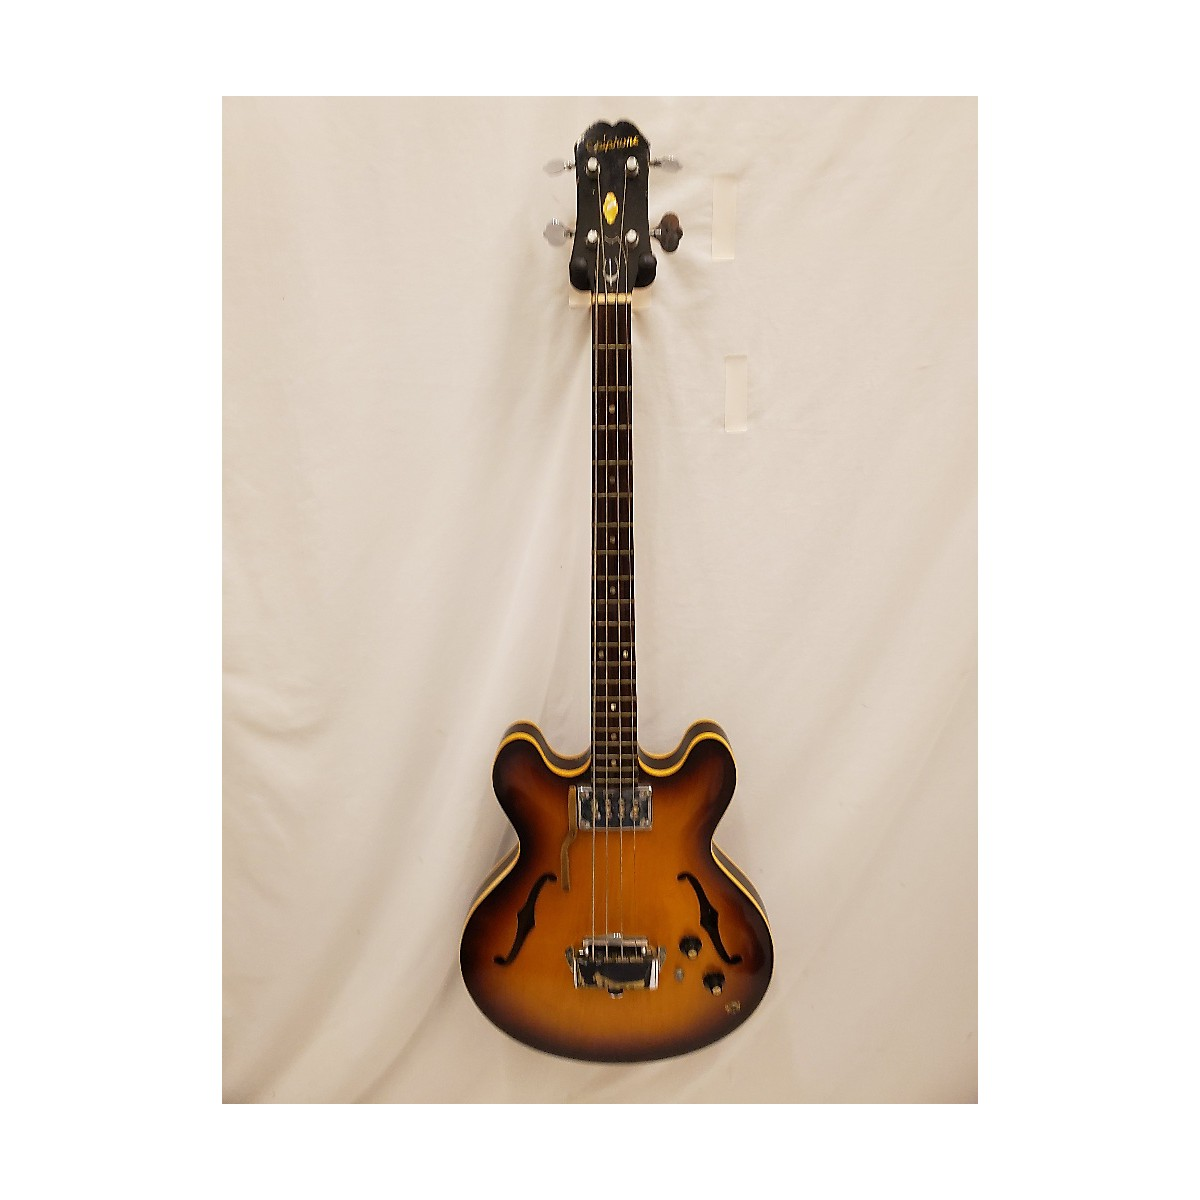 Epiphone 1968 Rivoli EB-232 Electric Bass Guitar